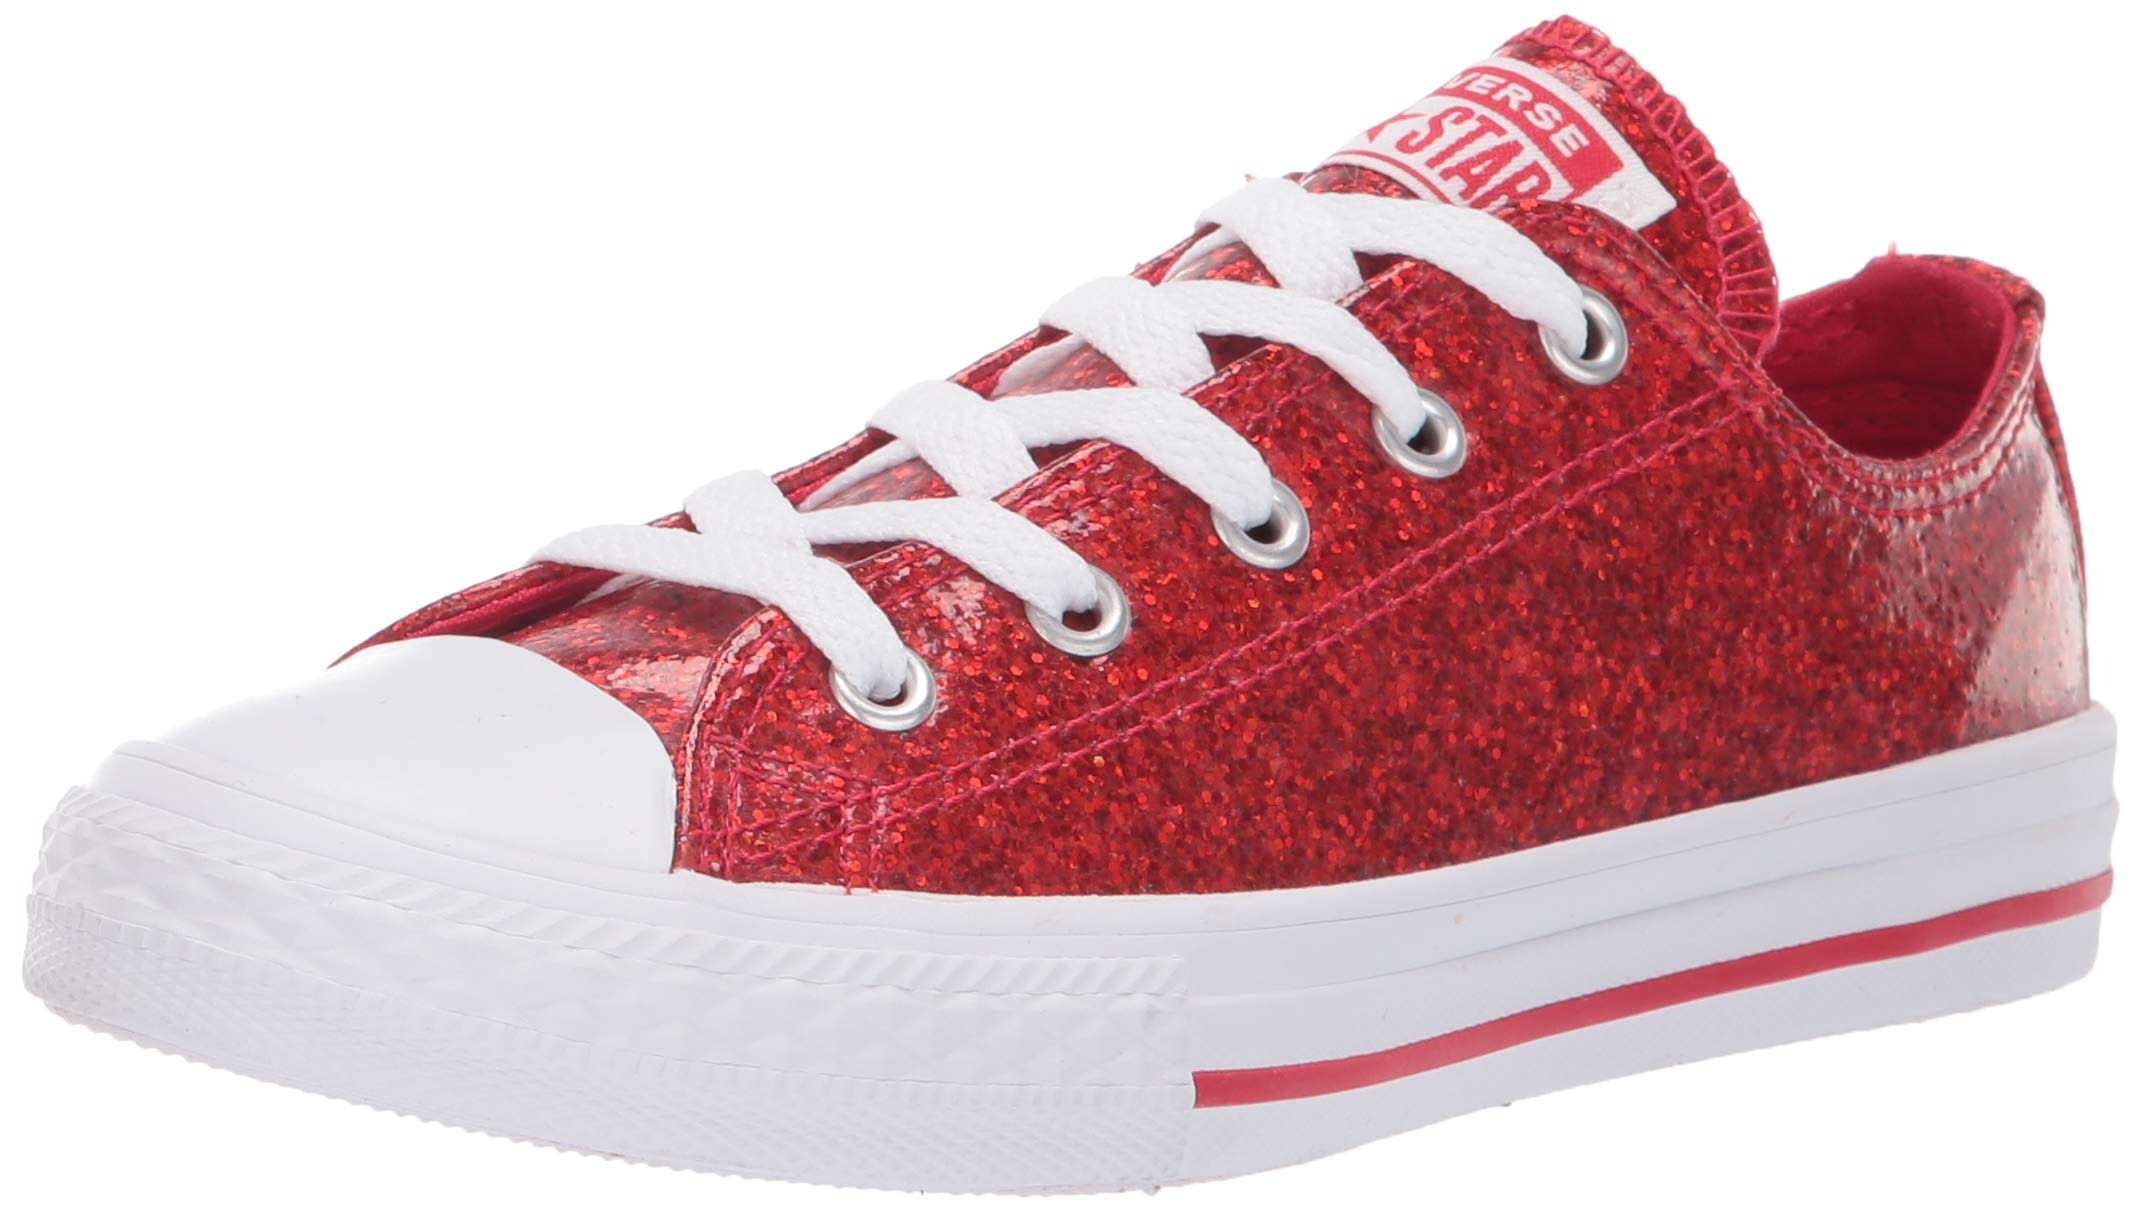 29c65ff248 Converse Chuck Taylor All Star, Unisex Kids' Low-Top Sneakers , Red ...